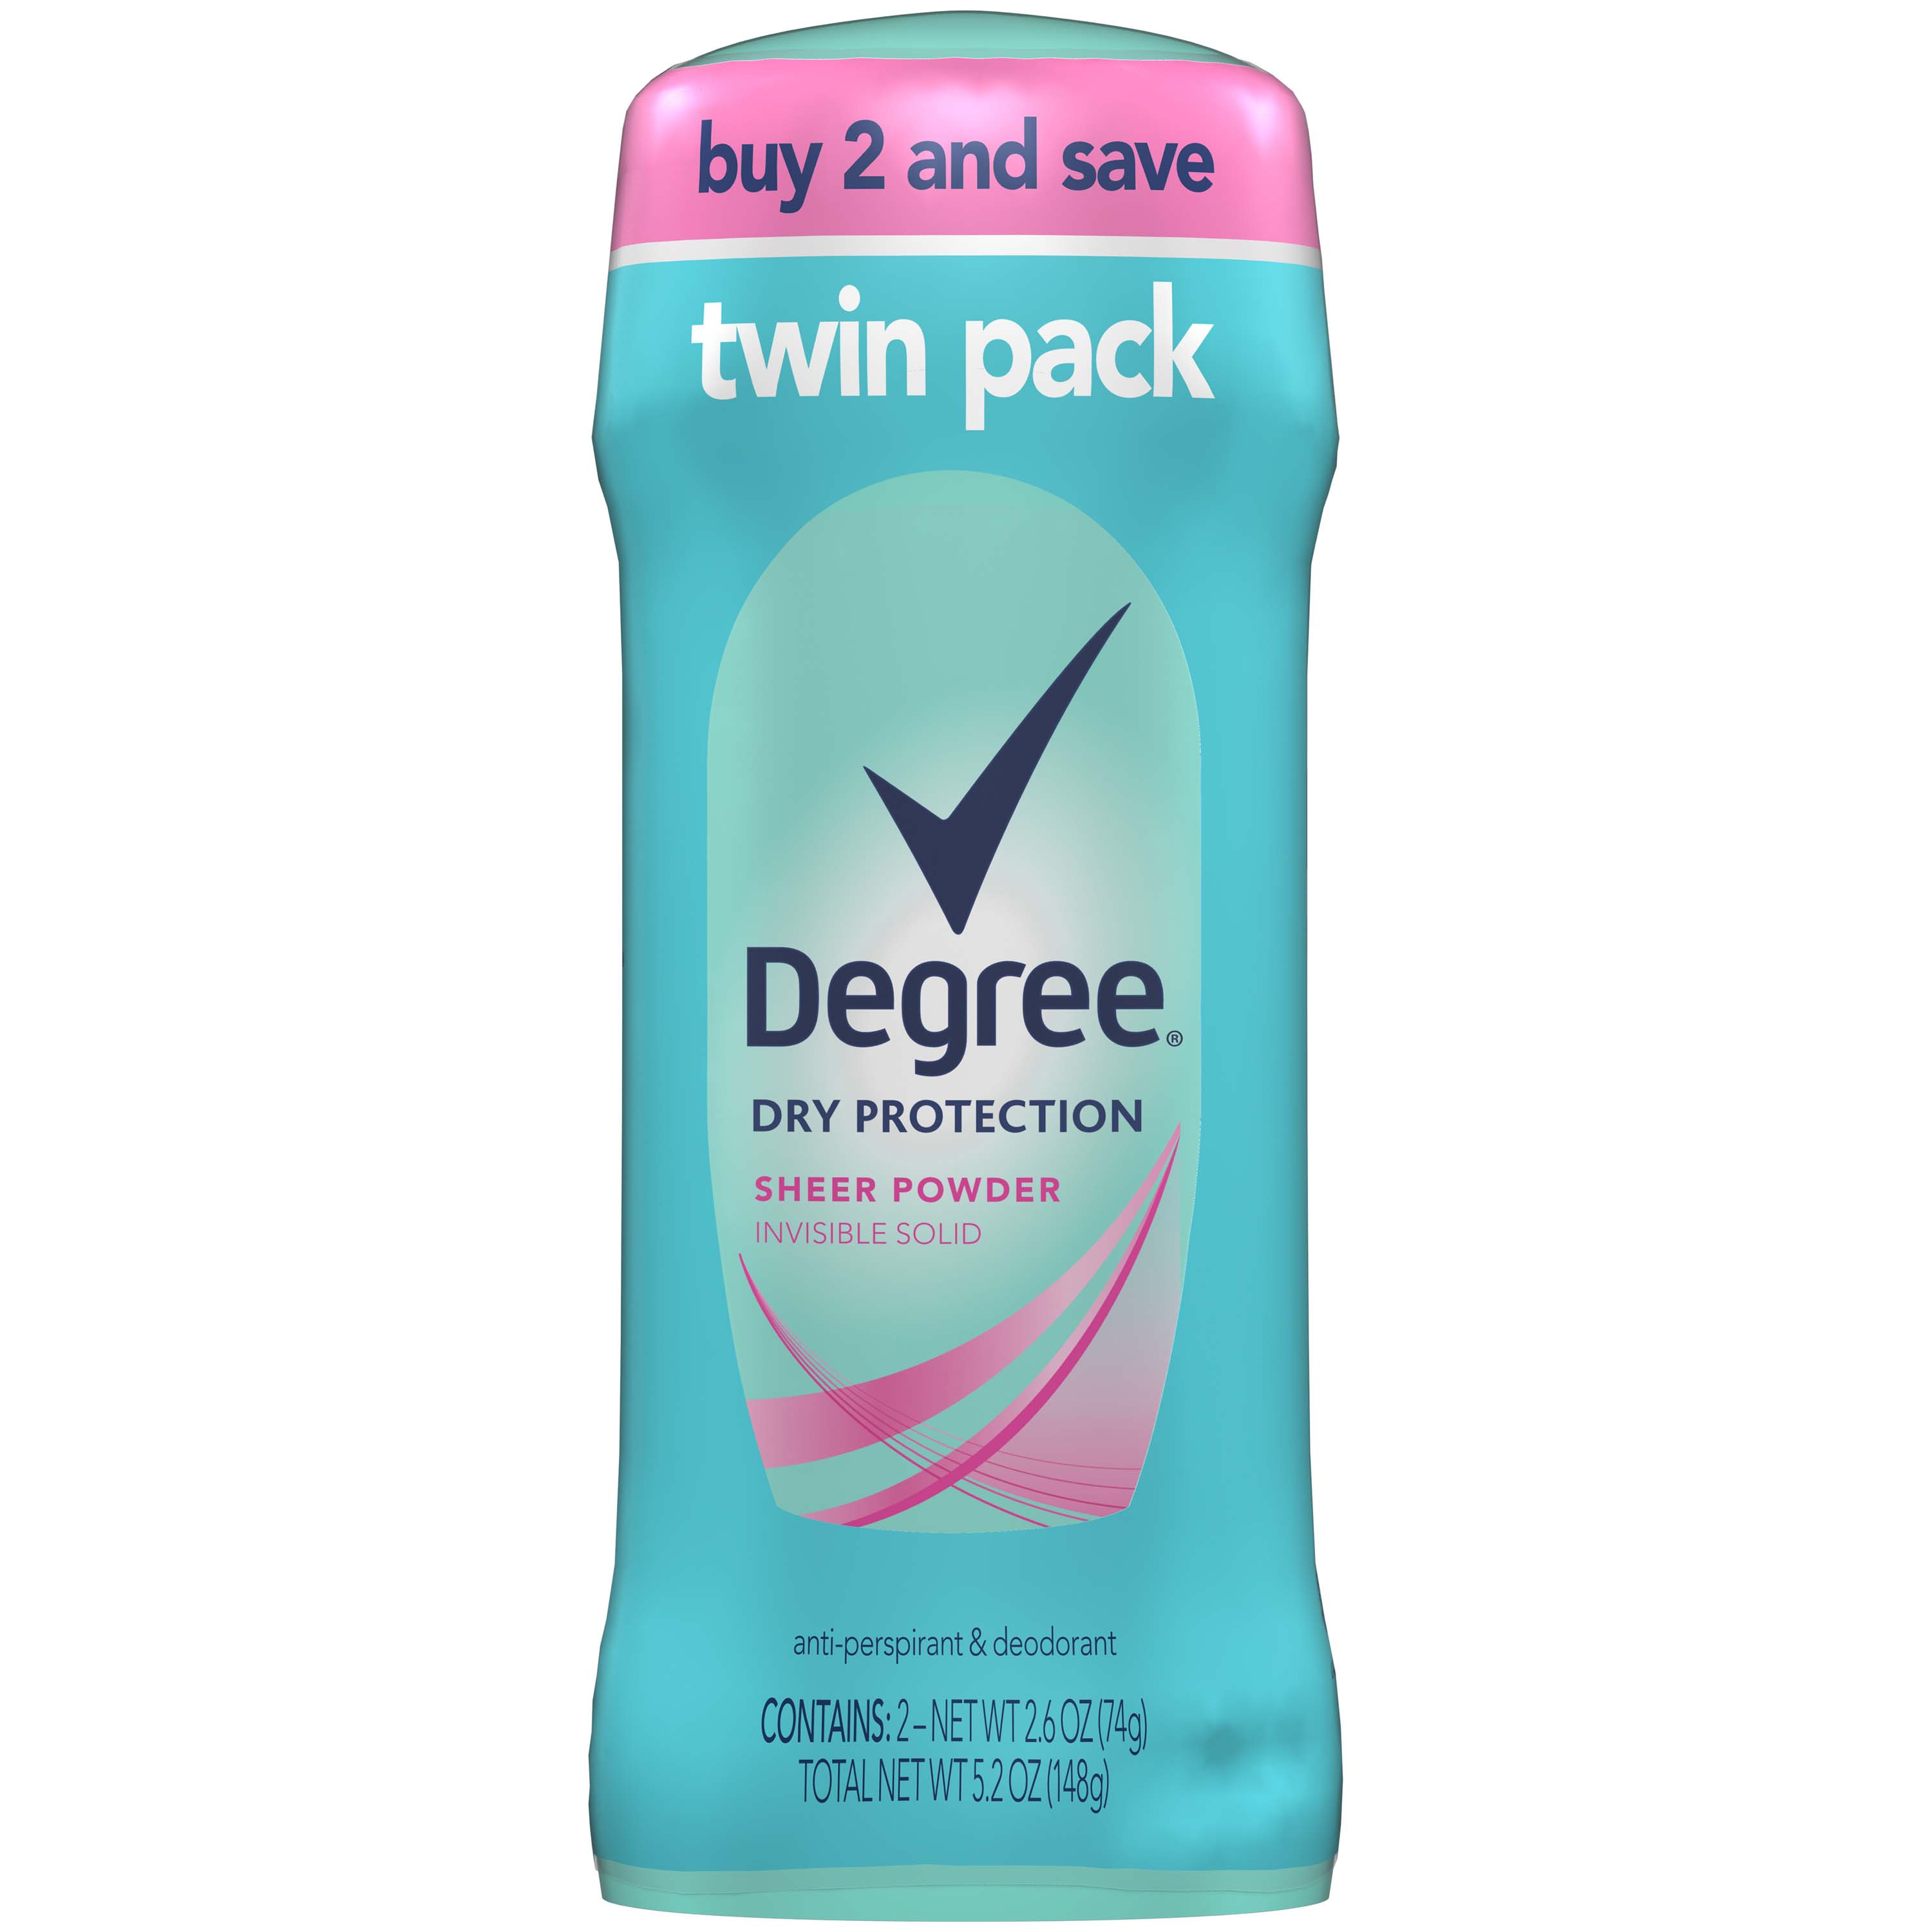 Degree Women Sheer Powder Dry Protection Antiperspirant Deodorant, 2.6 oz, Twin Pack